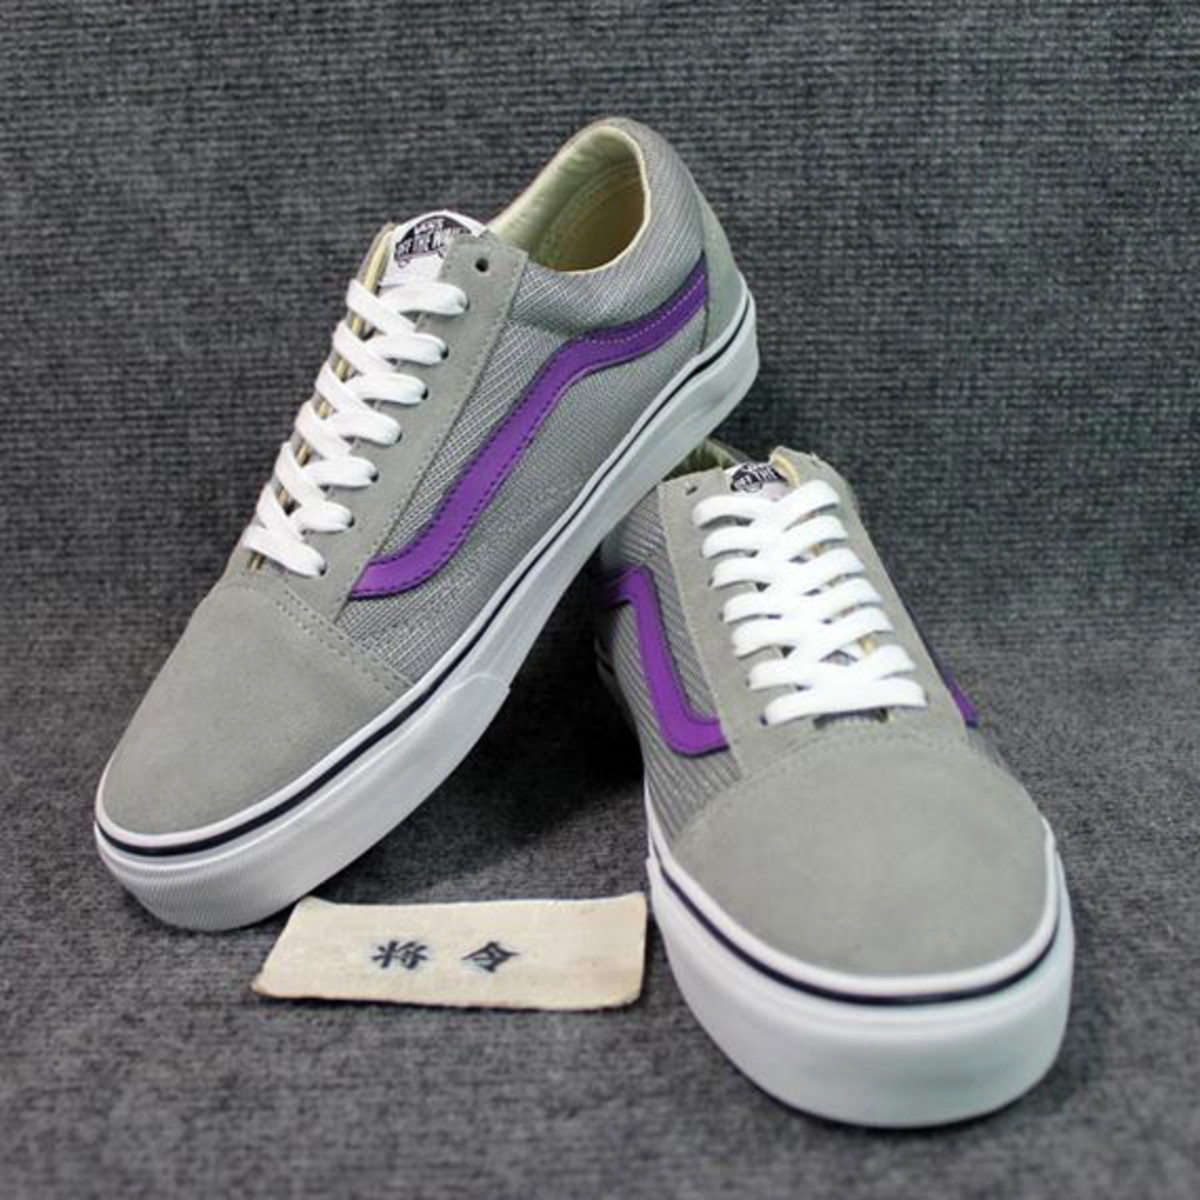 supreme-vans-old-skool-08